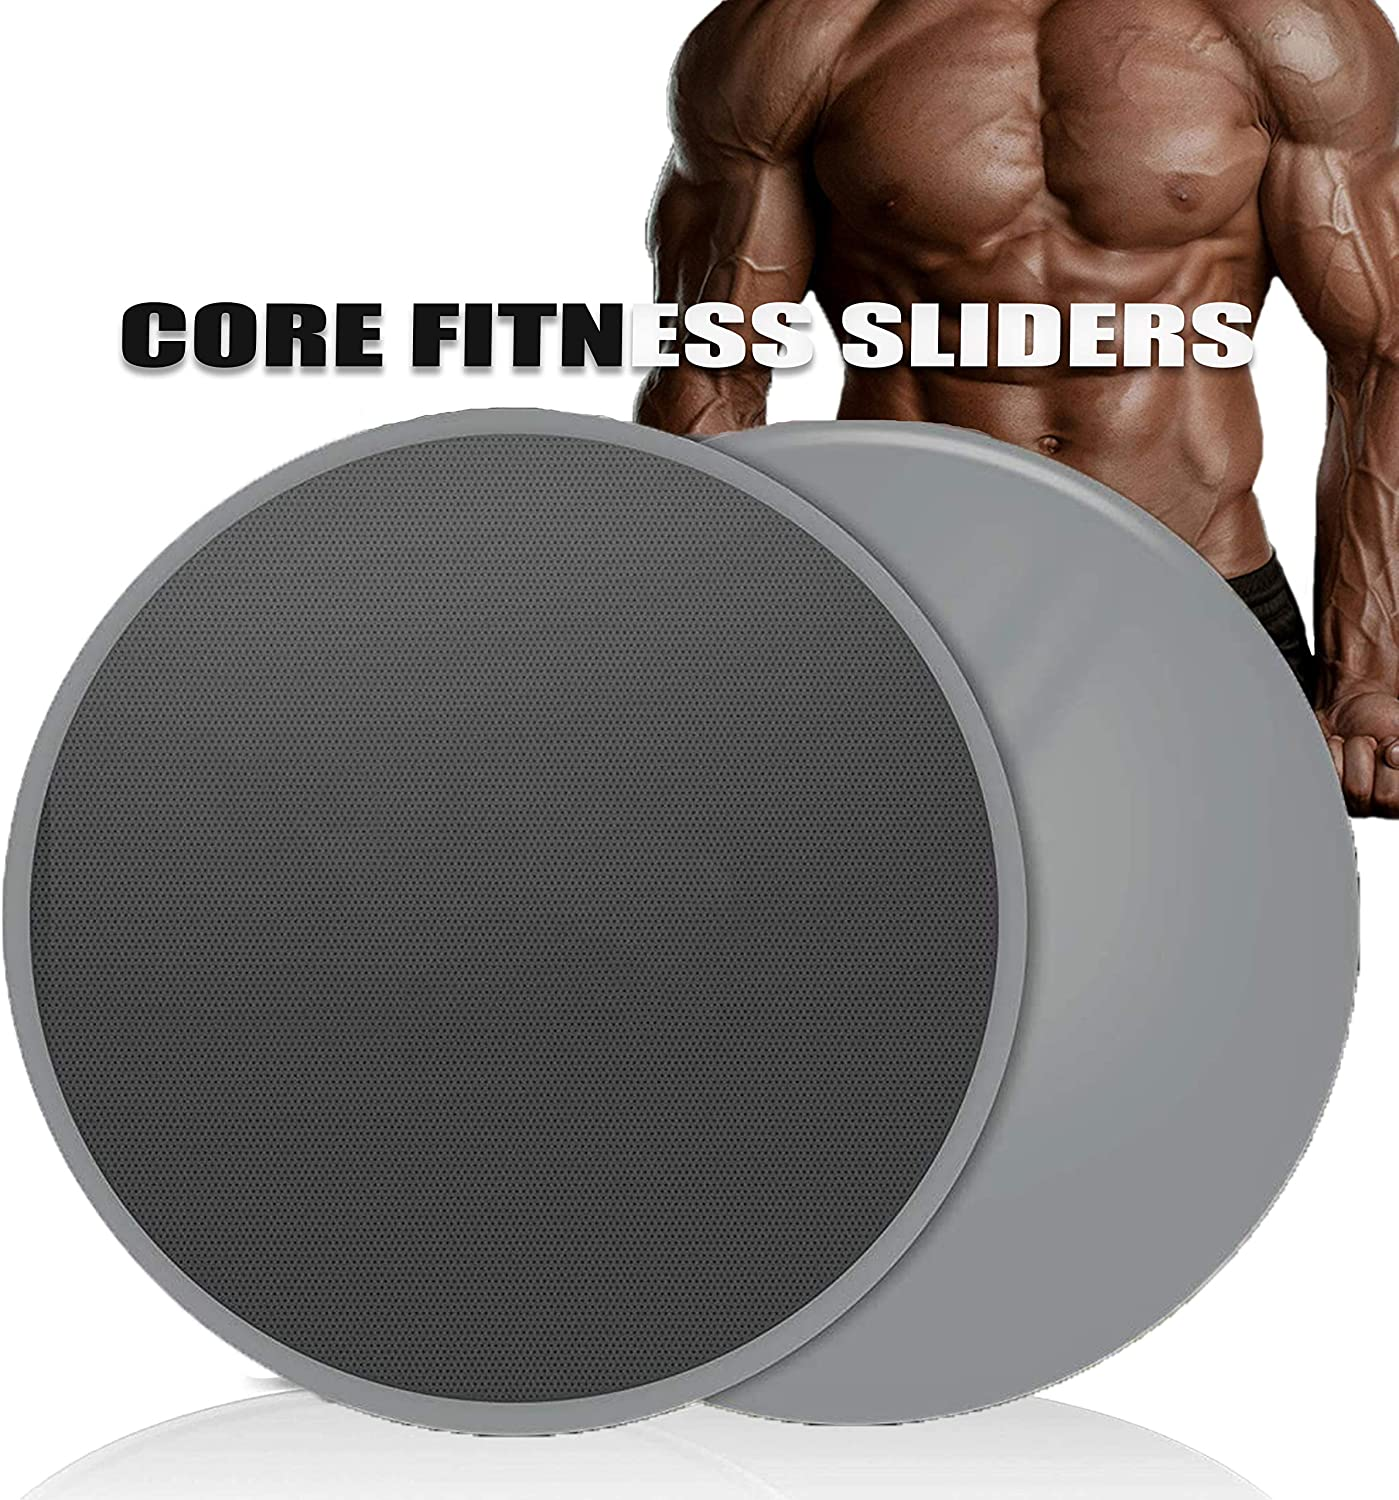 Tripsky Fitness Exercise Core Sliders,Workout Equipment at Home,Double Sided Gilder Strength Slides Discs Work Smoothly Perfect for Stretch Strength Abdominal Core Exercise (Set of 2)